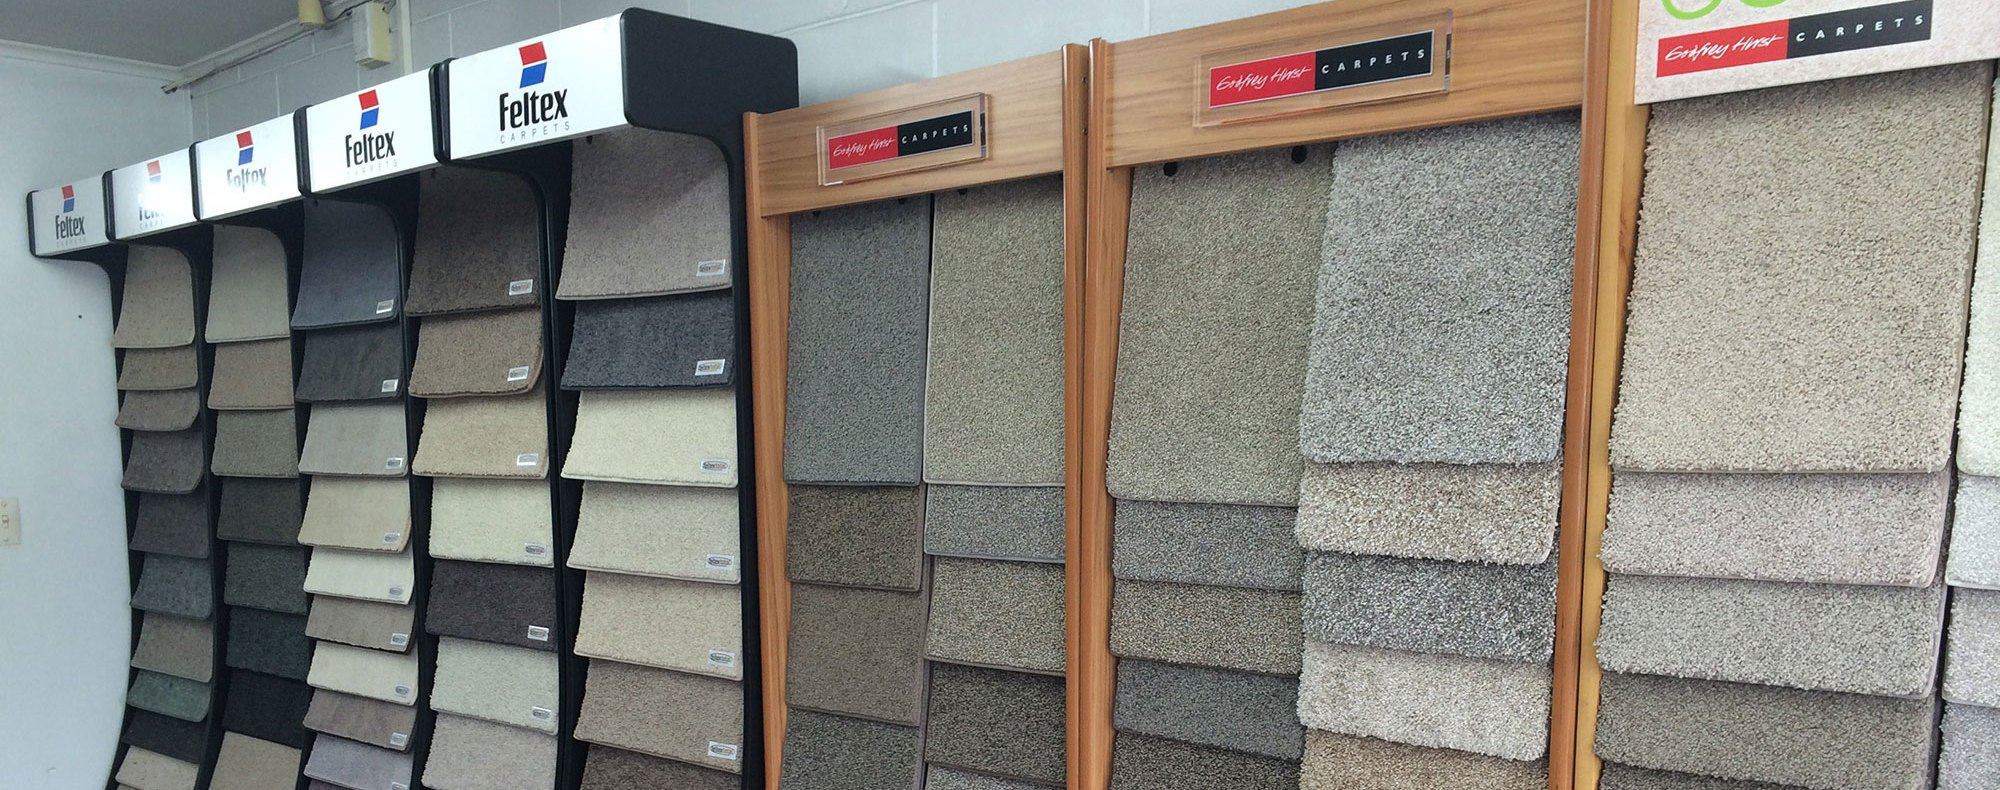 Showroom of leading carpet supplier in Auckland